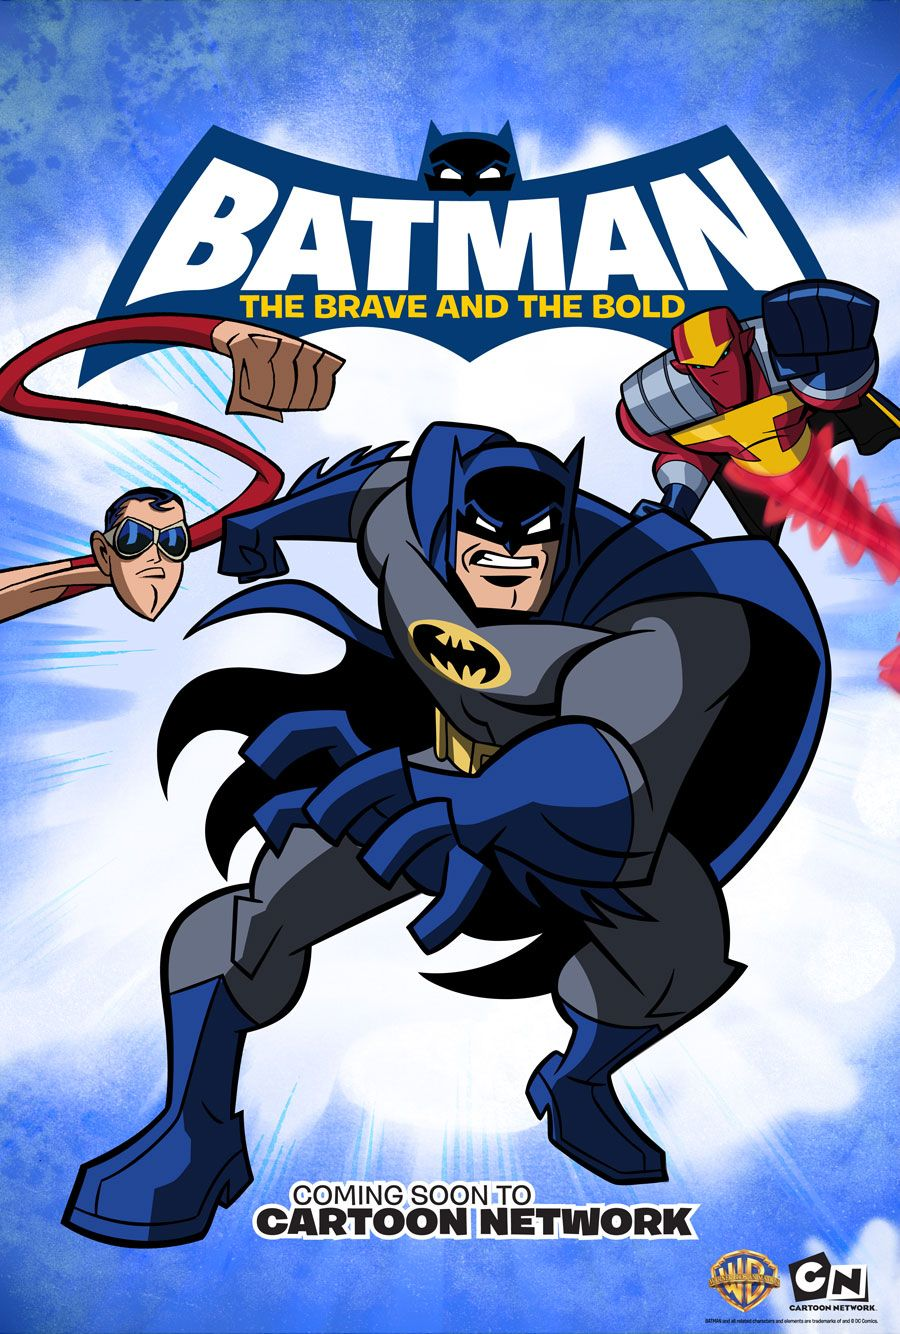 And Of Course The Batman Poster With Images Cartoon Tv Shows